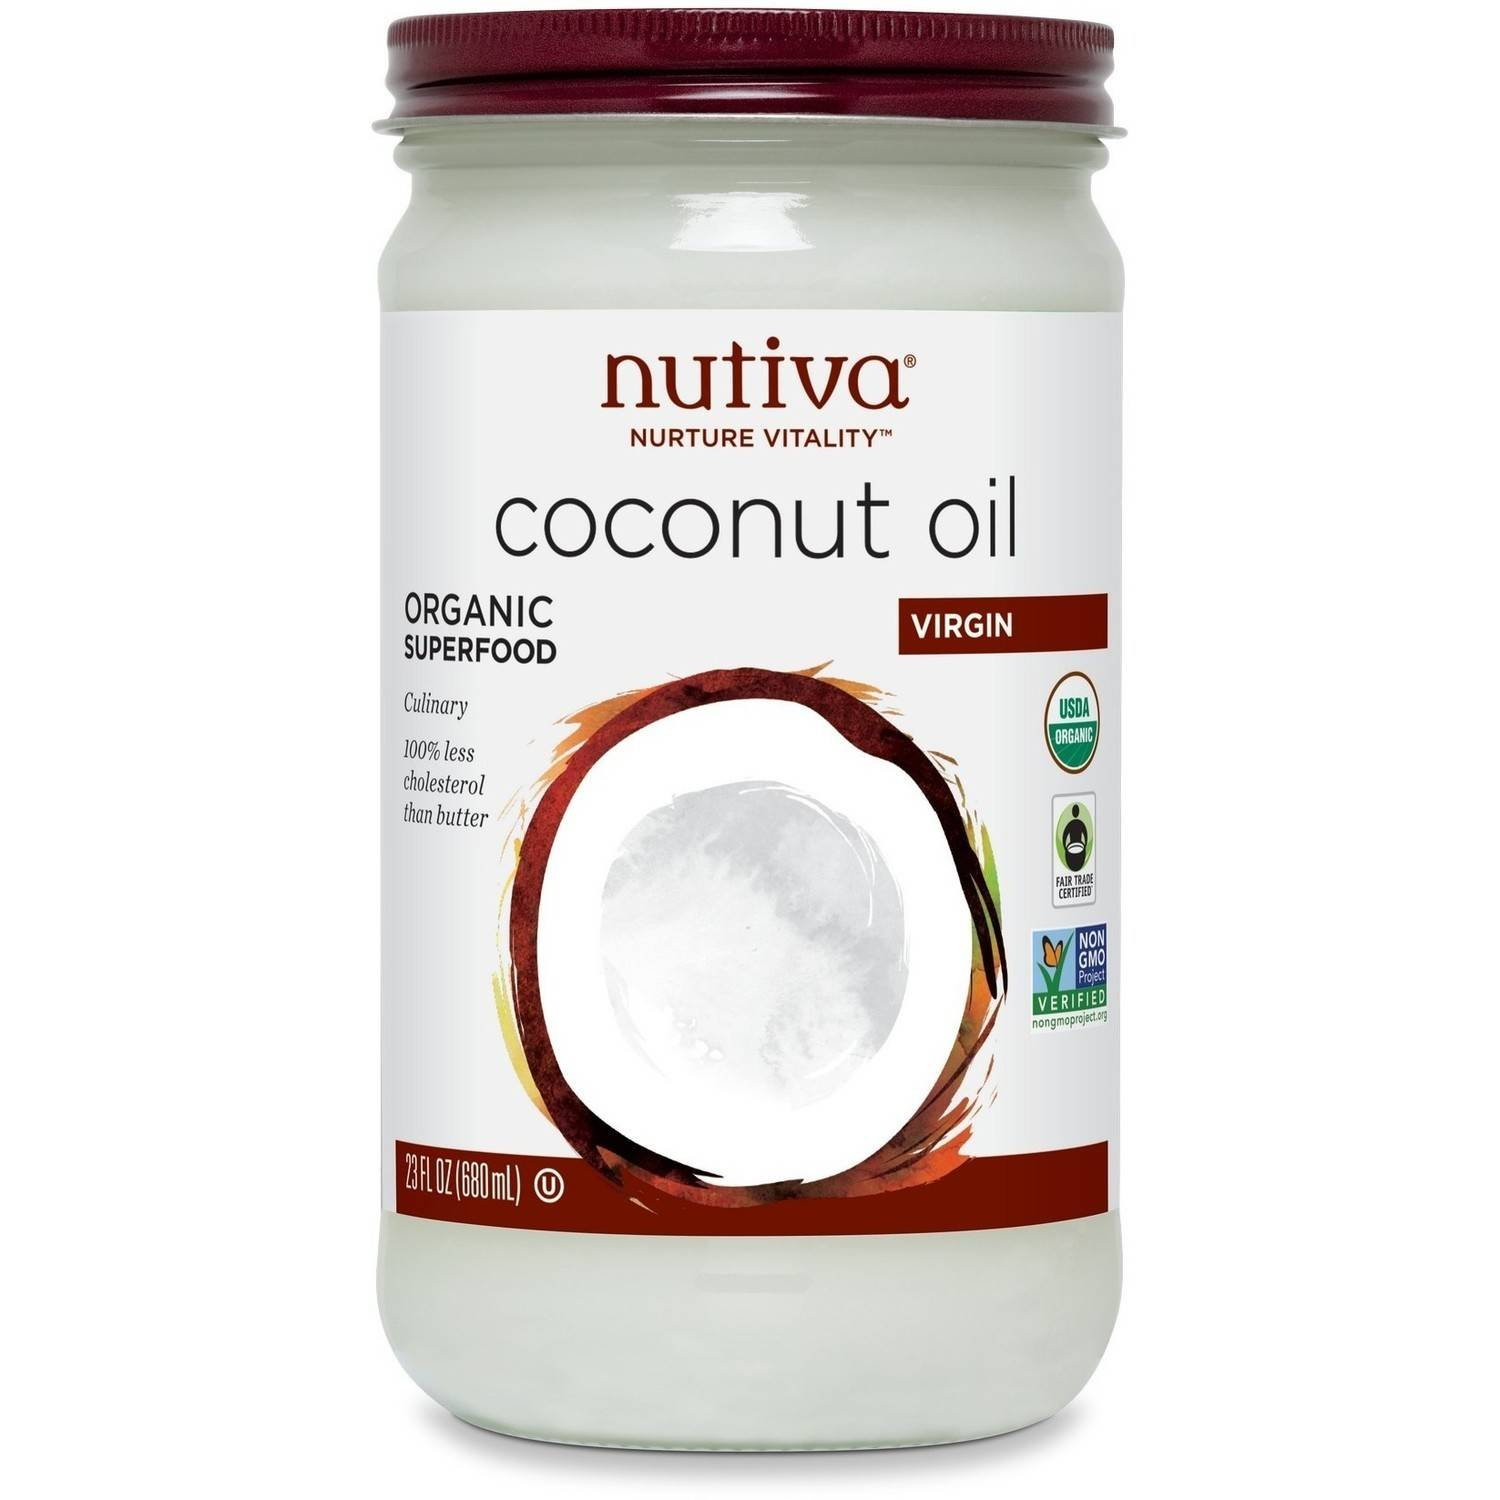 Nutiva Virign Coconut Oil, Glass Jar, 23 Count (Pack of 2)